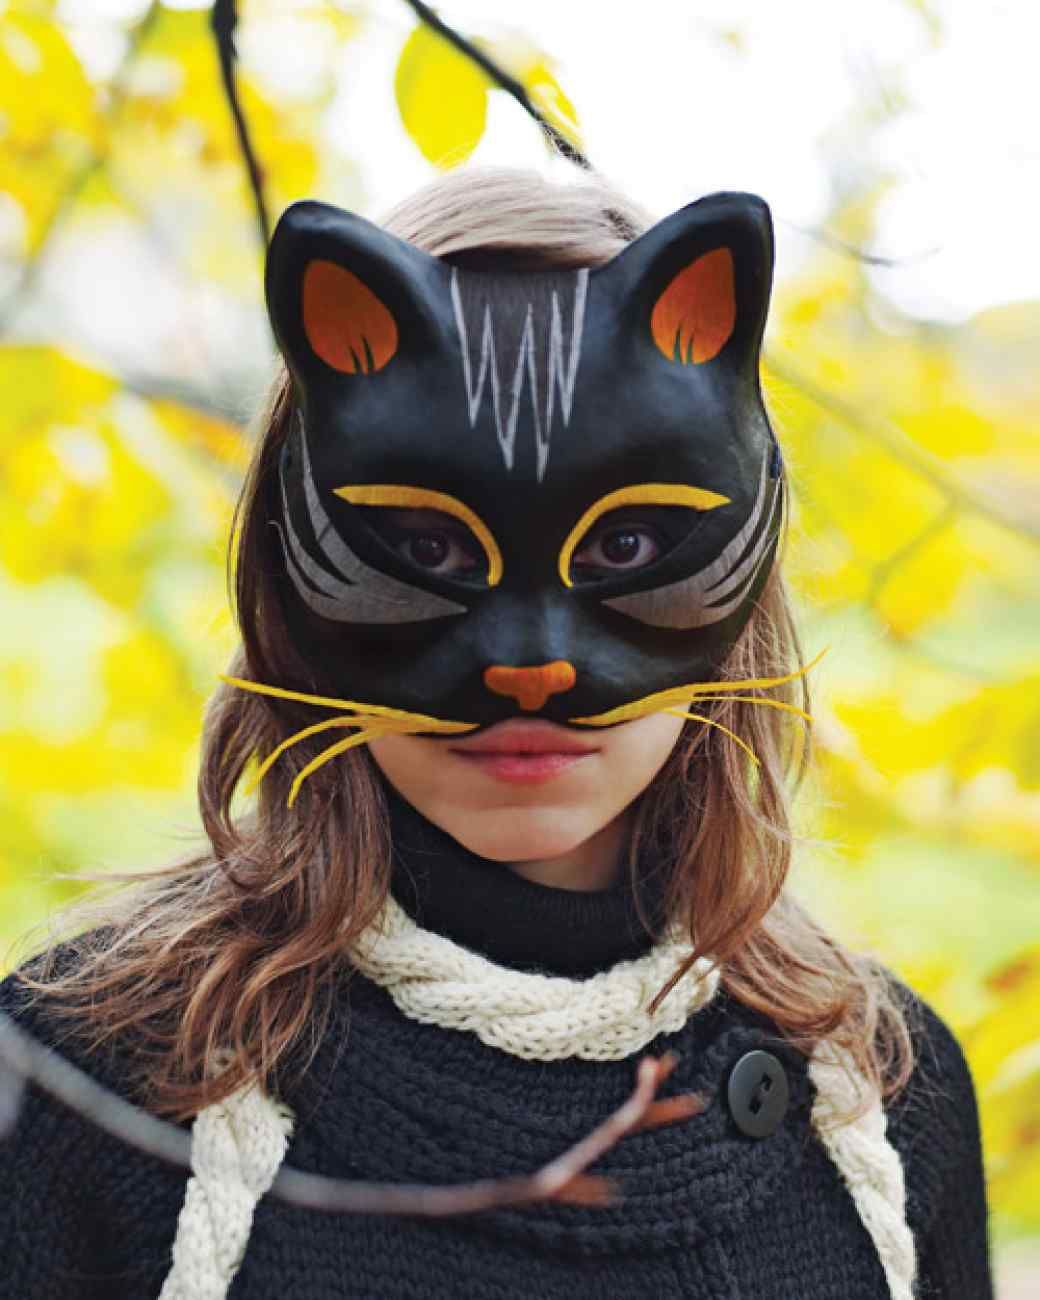 Black Cat Mask Pictures, Photos, and Images for Facebook, Tumblr ...